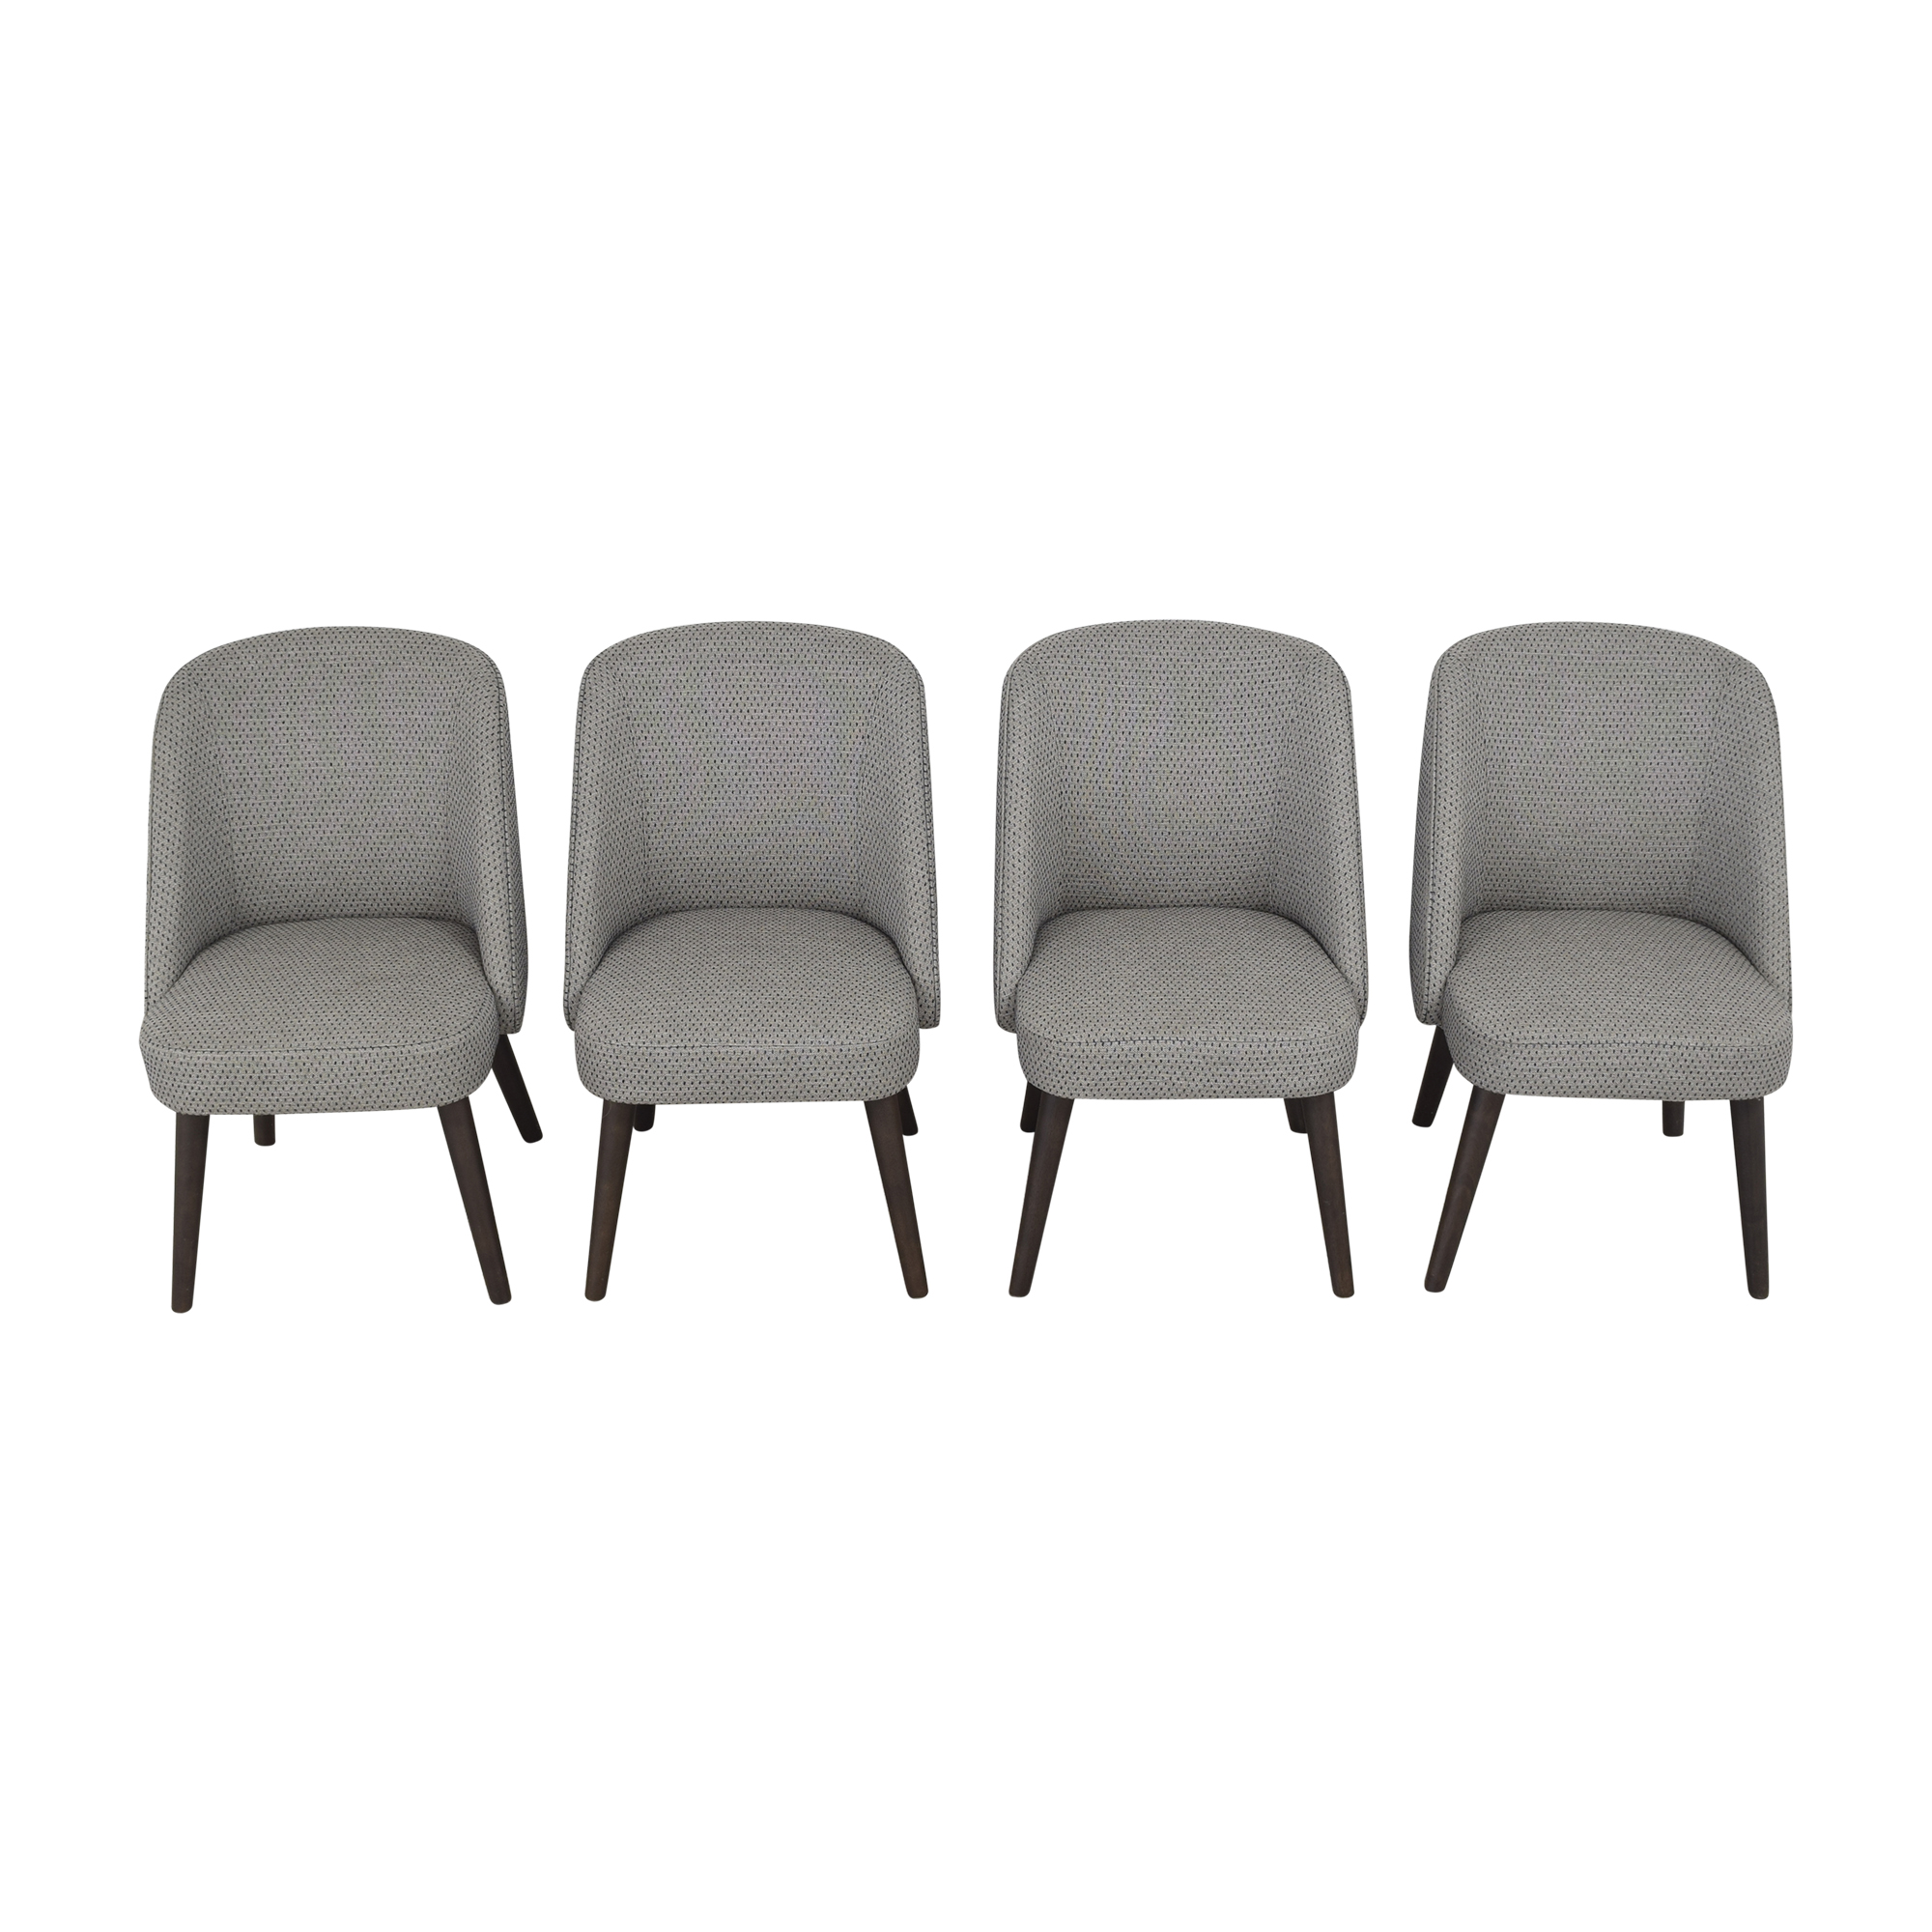 Room & Board Room & Board Cora Dining Chairs gray and blue